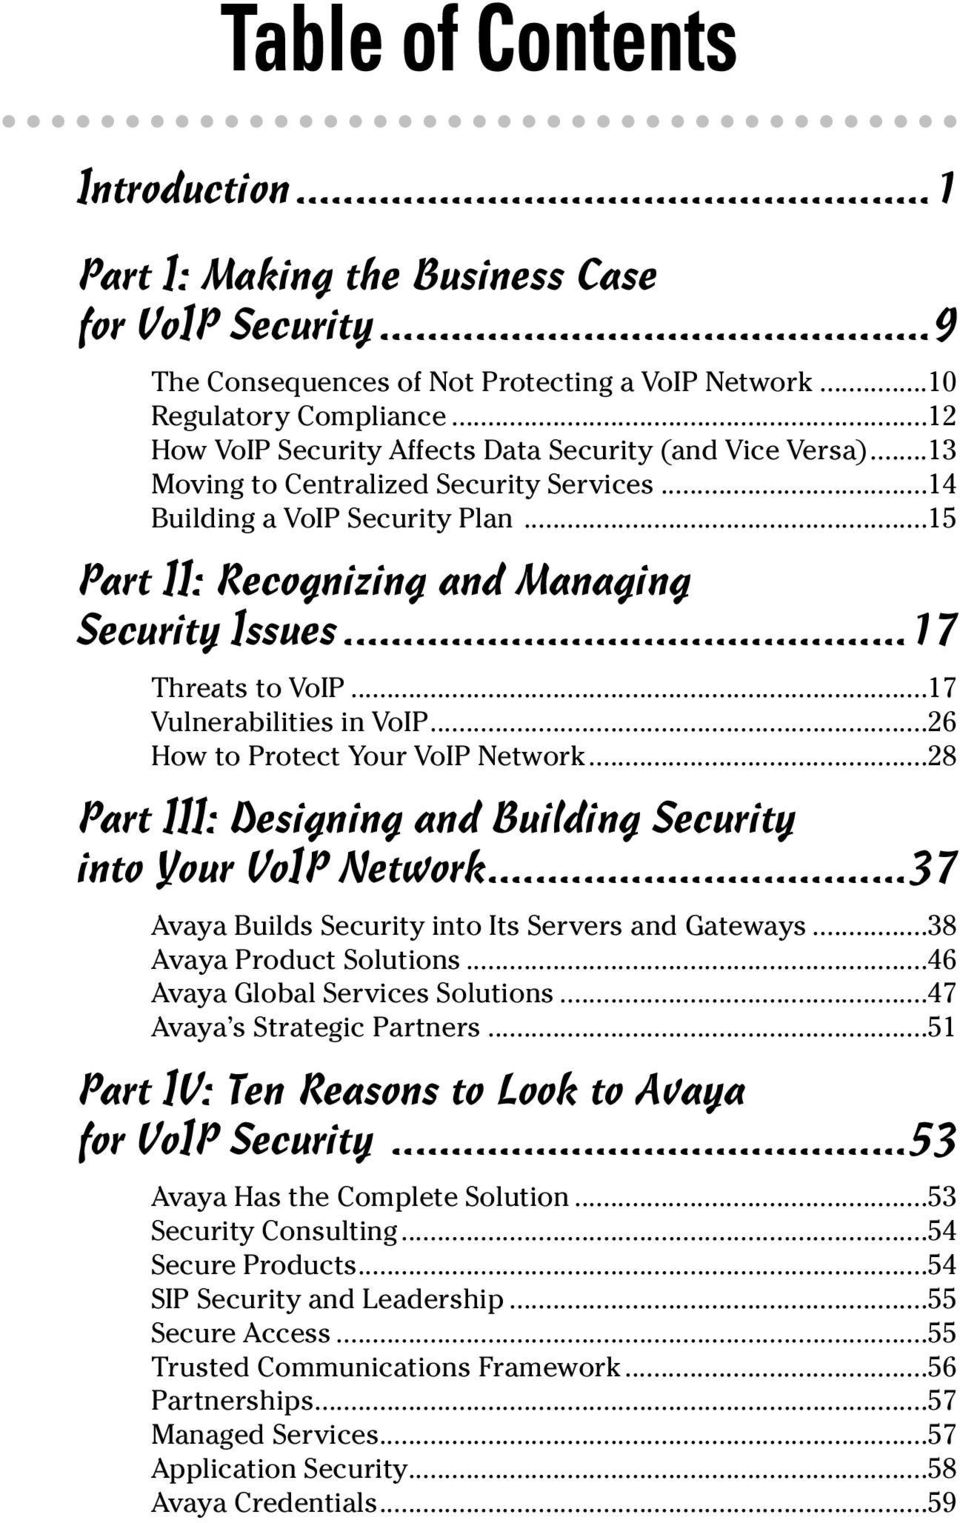 ..17 Threats to VoIP...17 Vulnerabilities in VoIP...26 How to Protect Your VoIP Network...28 Part III: Designing and Building Security into Your VoIP Network.